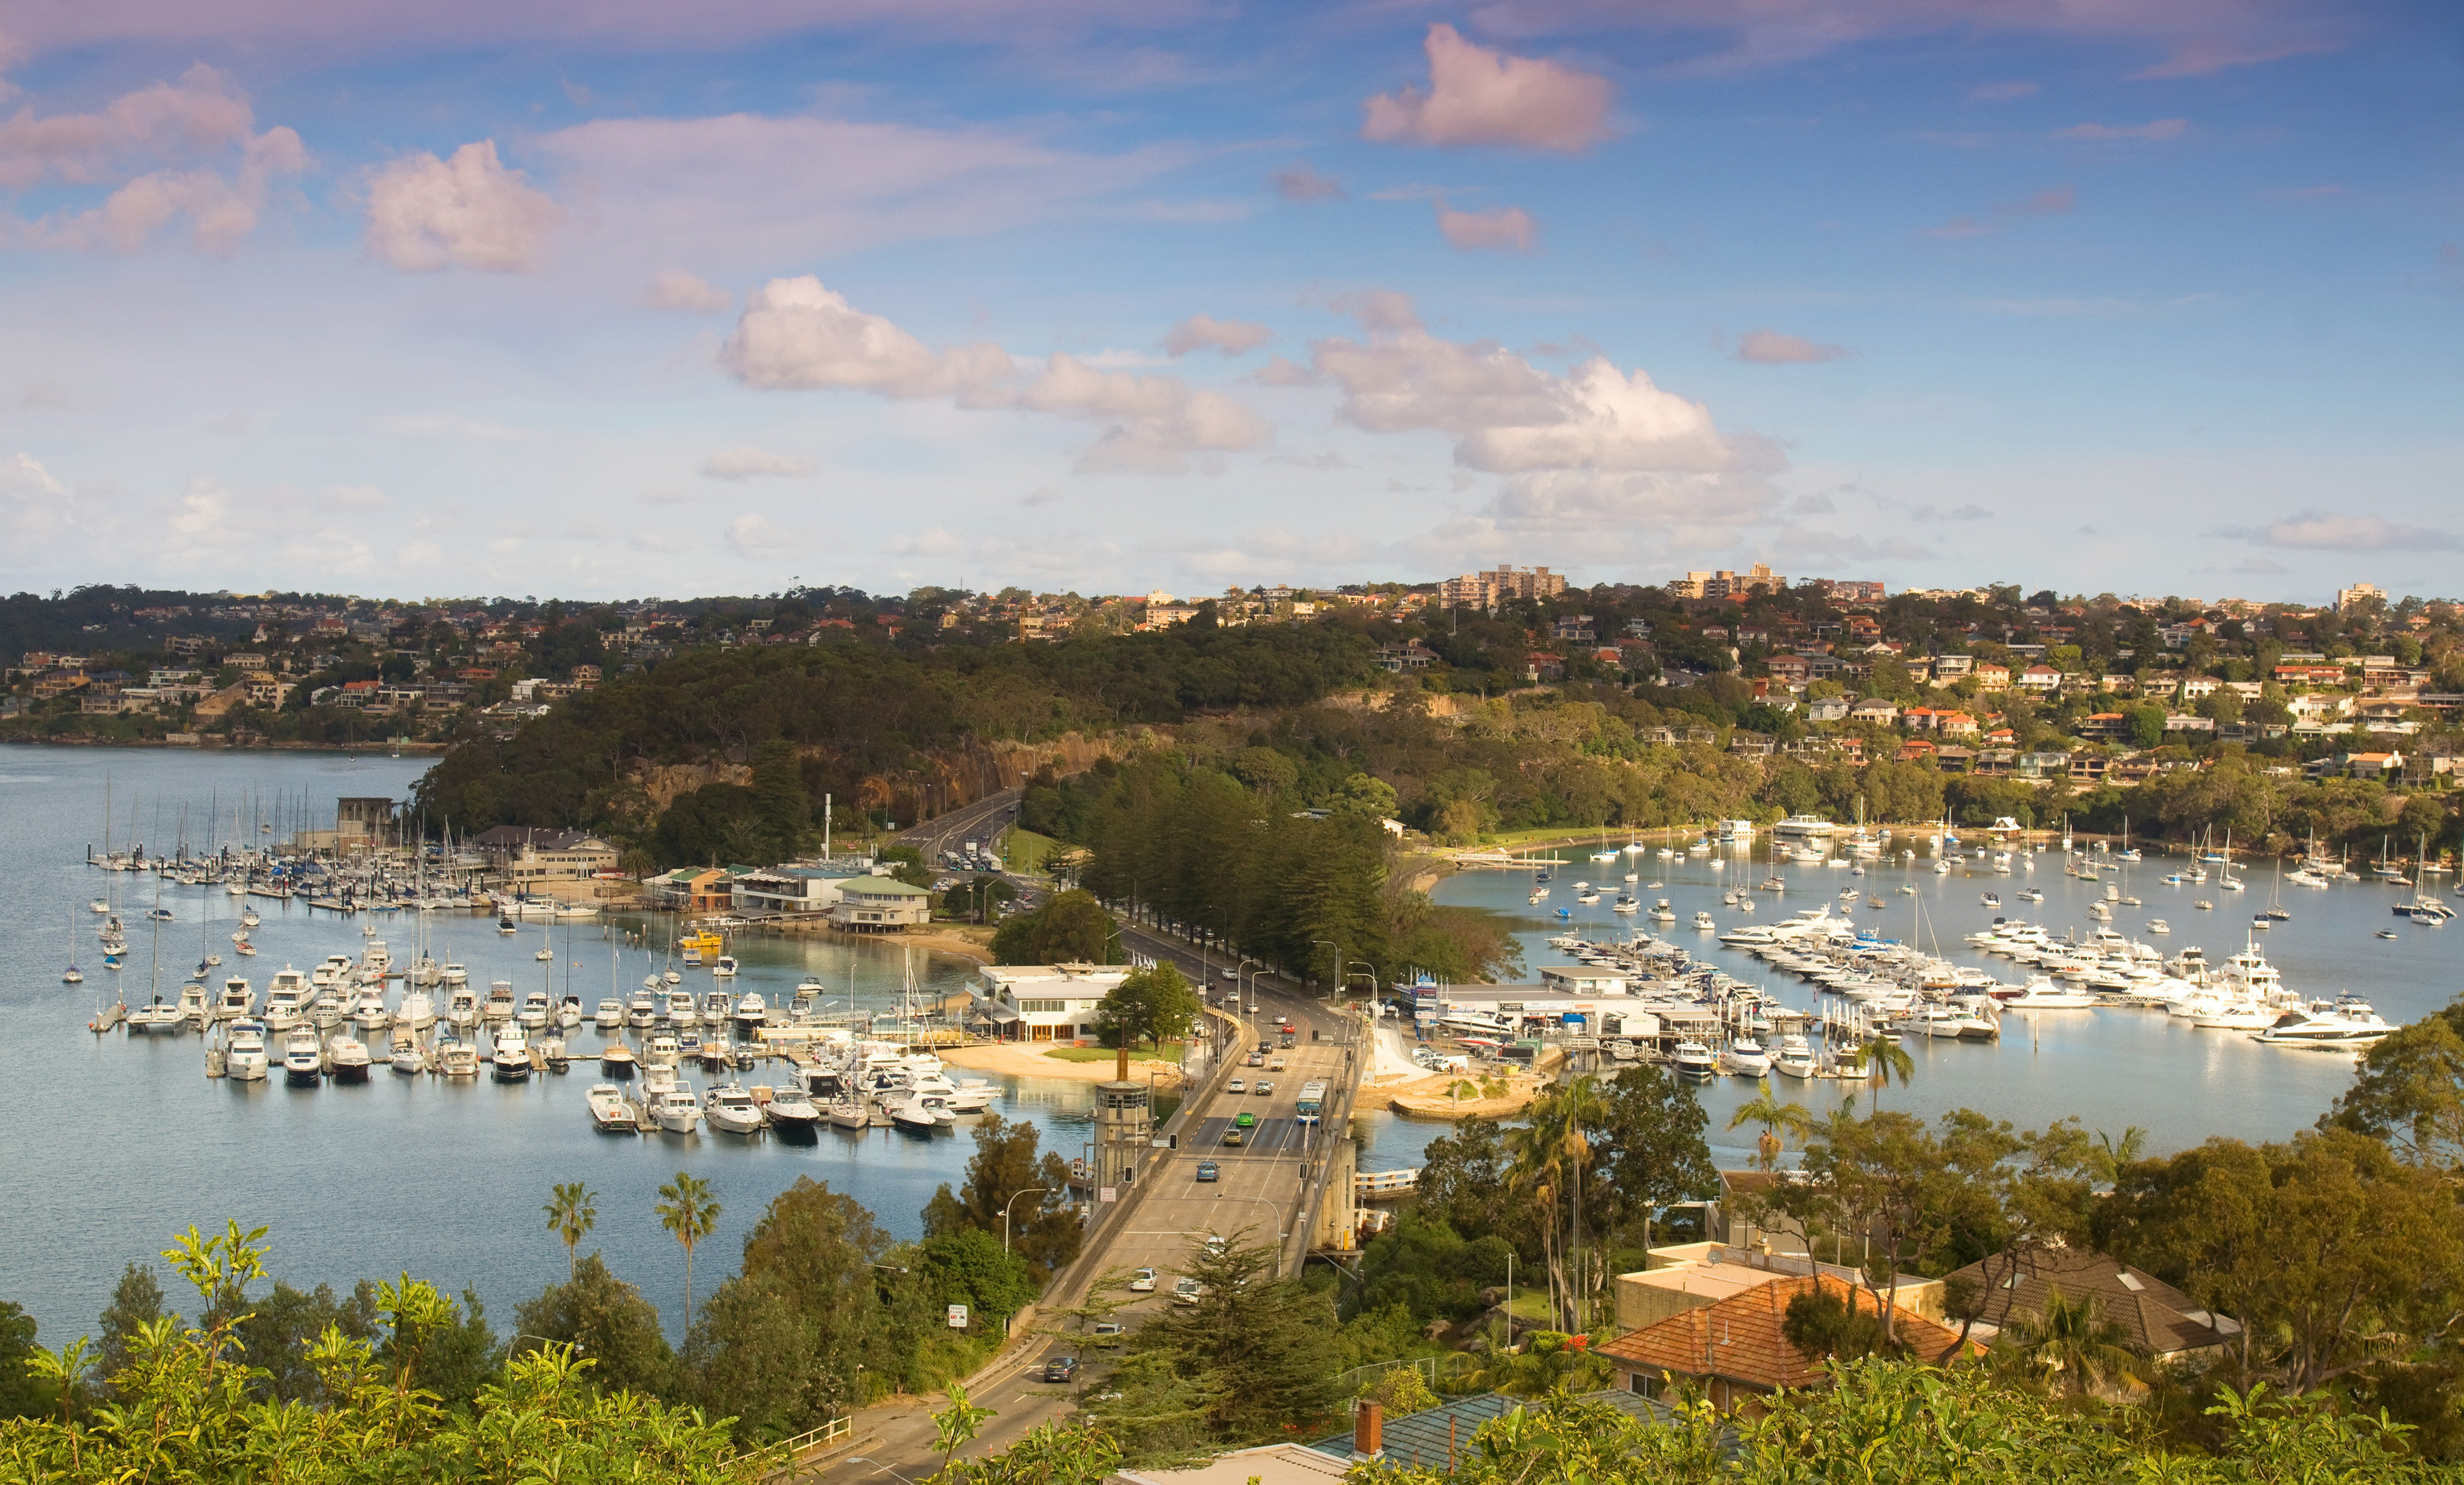 Outdoors + Adventure Sydney water outdoor sky Boat City marina Nature Lake River Harbor bird's eye view Sea bay Coast aerial photography horizon suburb cloud panorama tree reservoir dock port inlet skyline tourism shore overlooking surrounded several